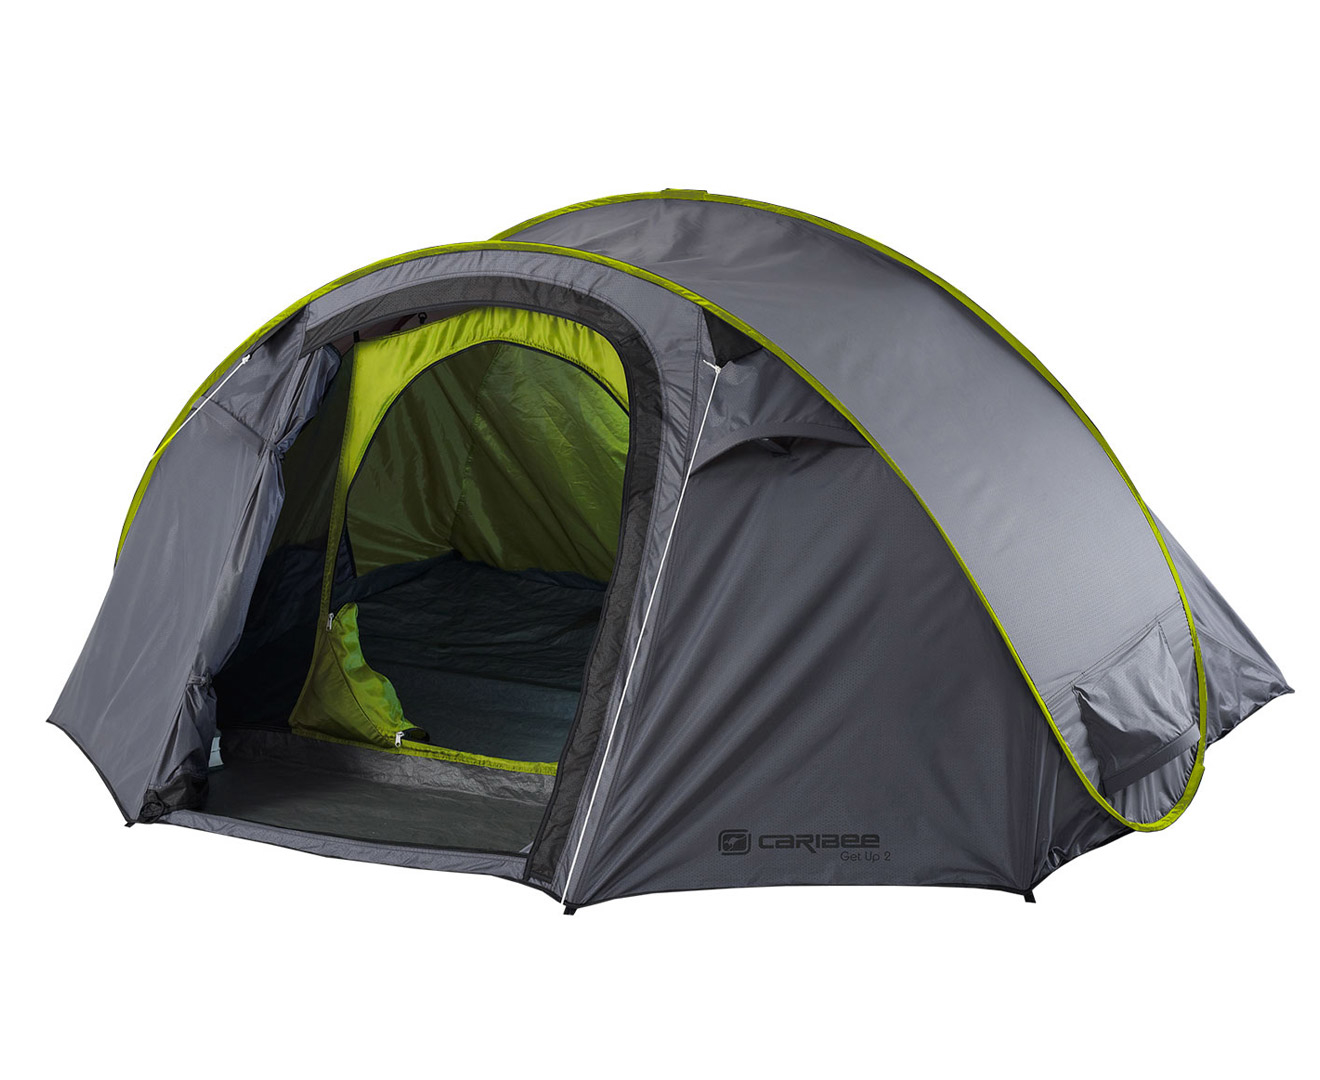 Caribee Get Up 2-Person Instant Pop-Up Tent - Grey/Green  sc 1 st  eBay & Caribee Get Up 2-Person Instant Pop-Up Tent - Grey/Green | eBay